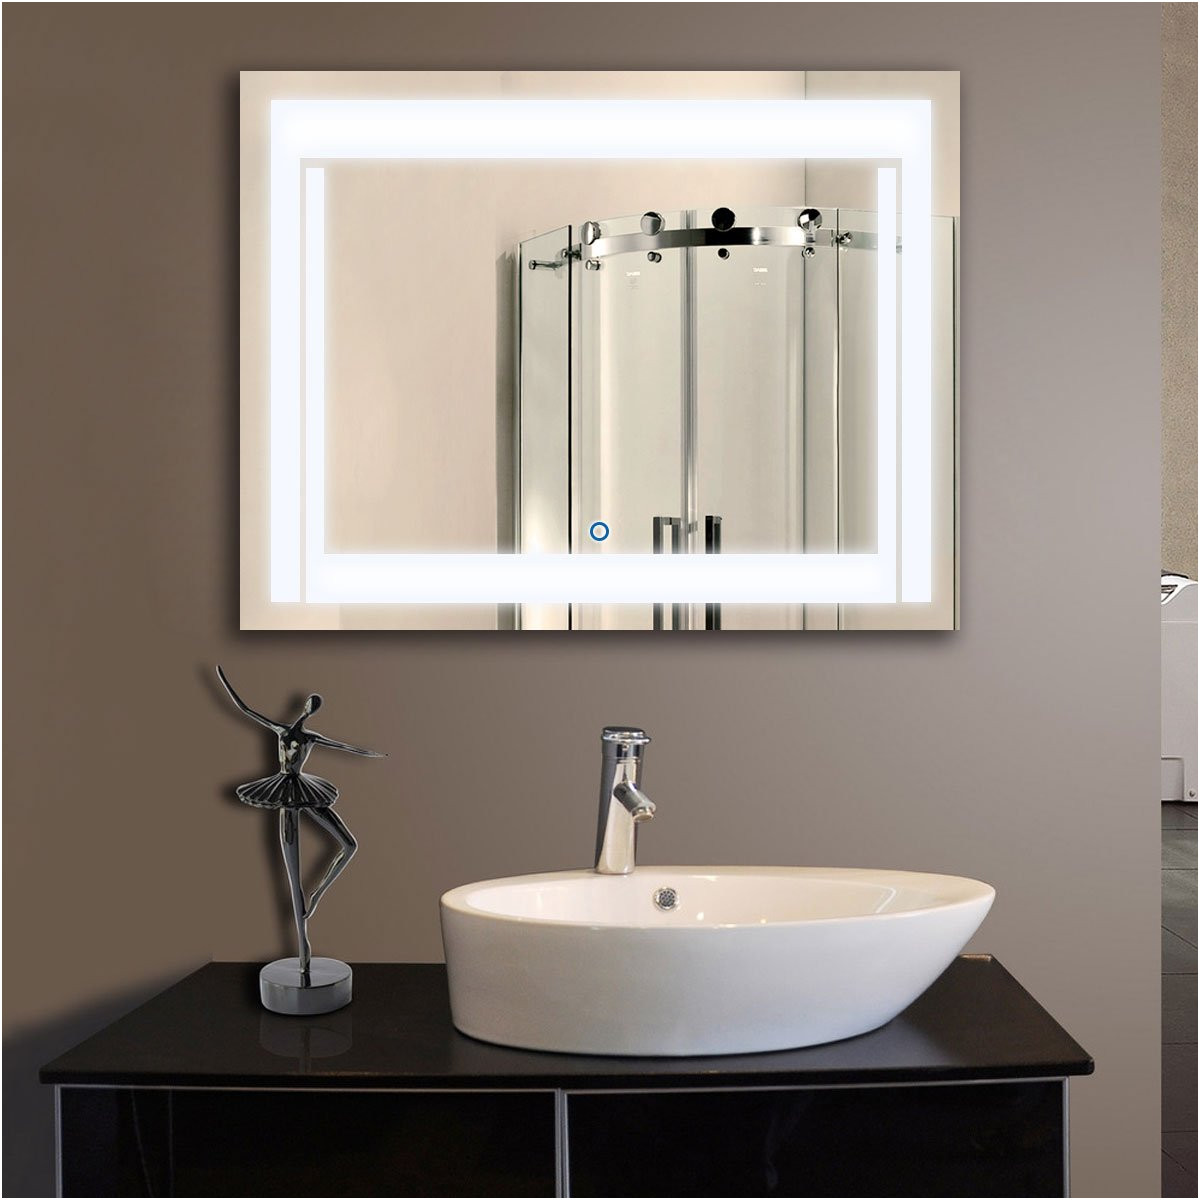 Bathroom Mirrors with Lights and Shelf Fresh Buy Vertical Led Lighted Vanity Bathroom Silvered Mirror touch